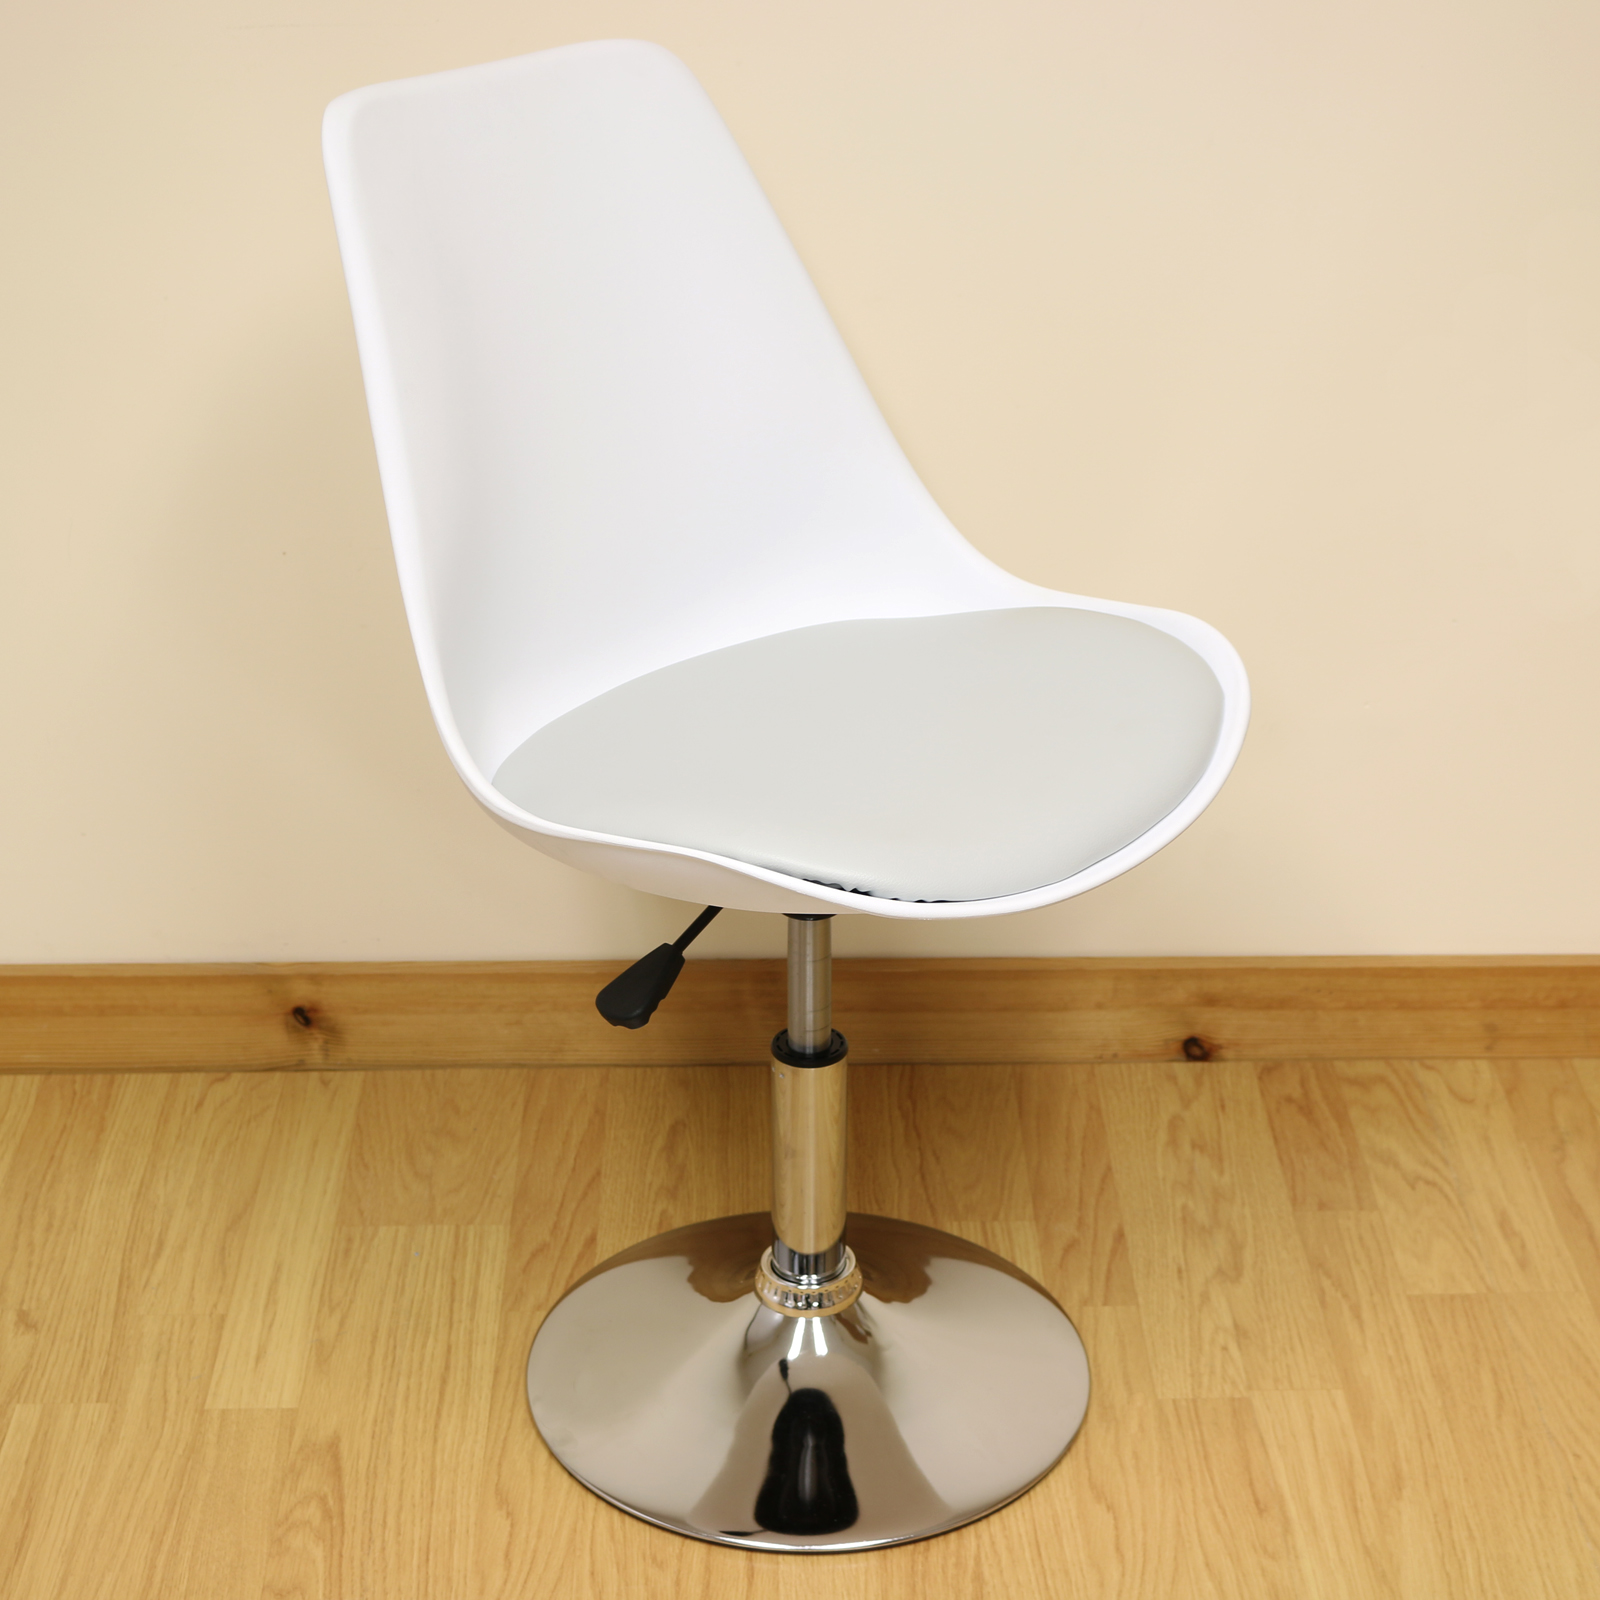 c4634c816a52 Sentinel White & Grey Adjustable Swivel Desk Chair Home/Office Comfy  Computer/PC Seat